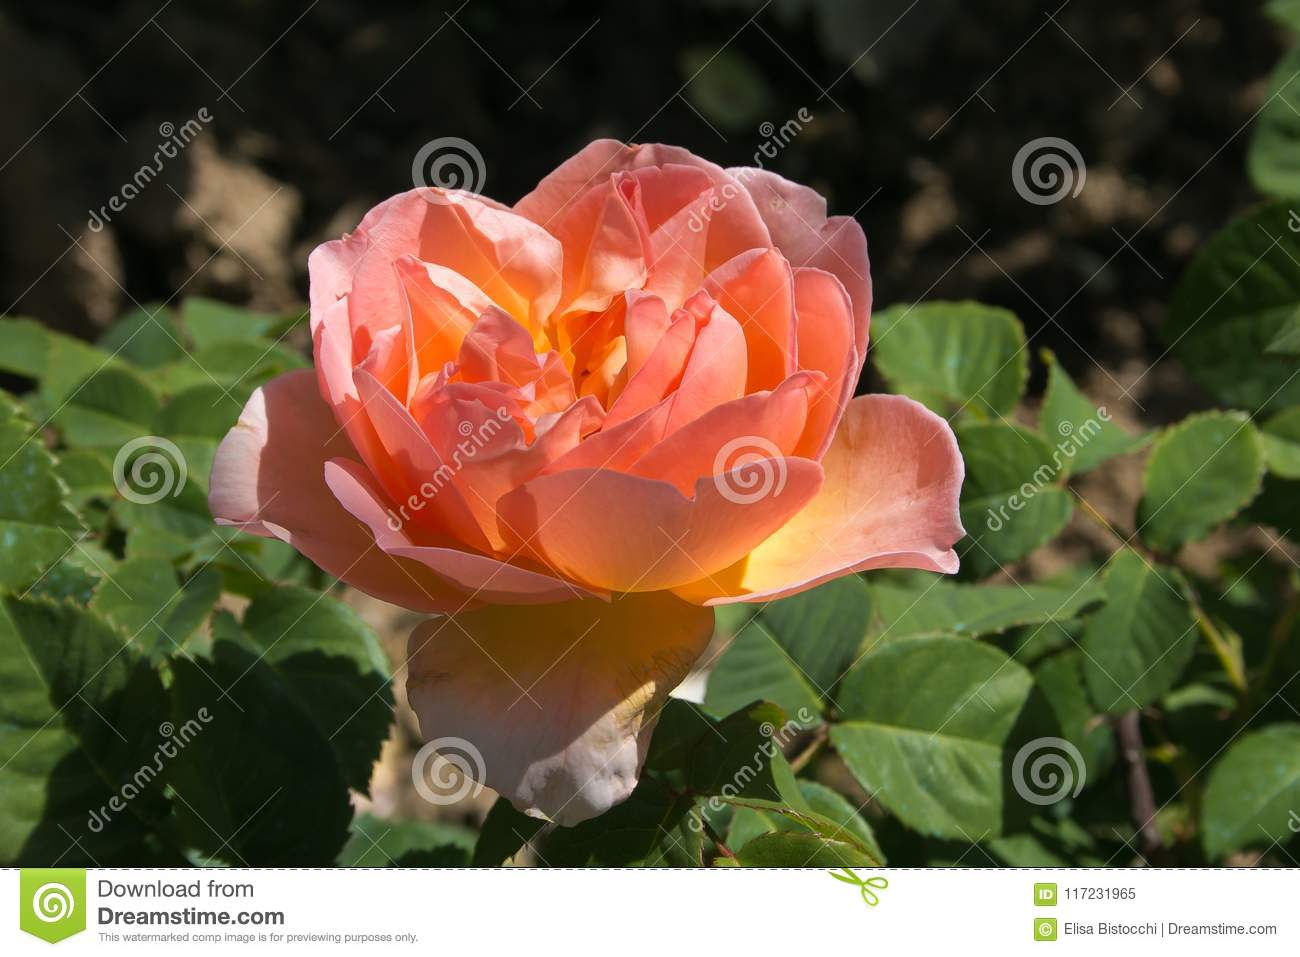 Macro of beautiful rose flower in garden stock image image of download macro of beautiful rose flower in garden stock image image of decoration floral izmirmasajfo